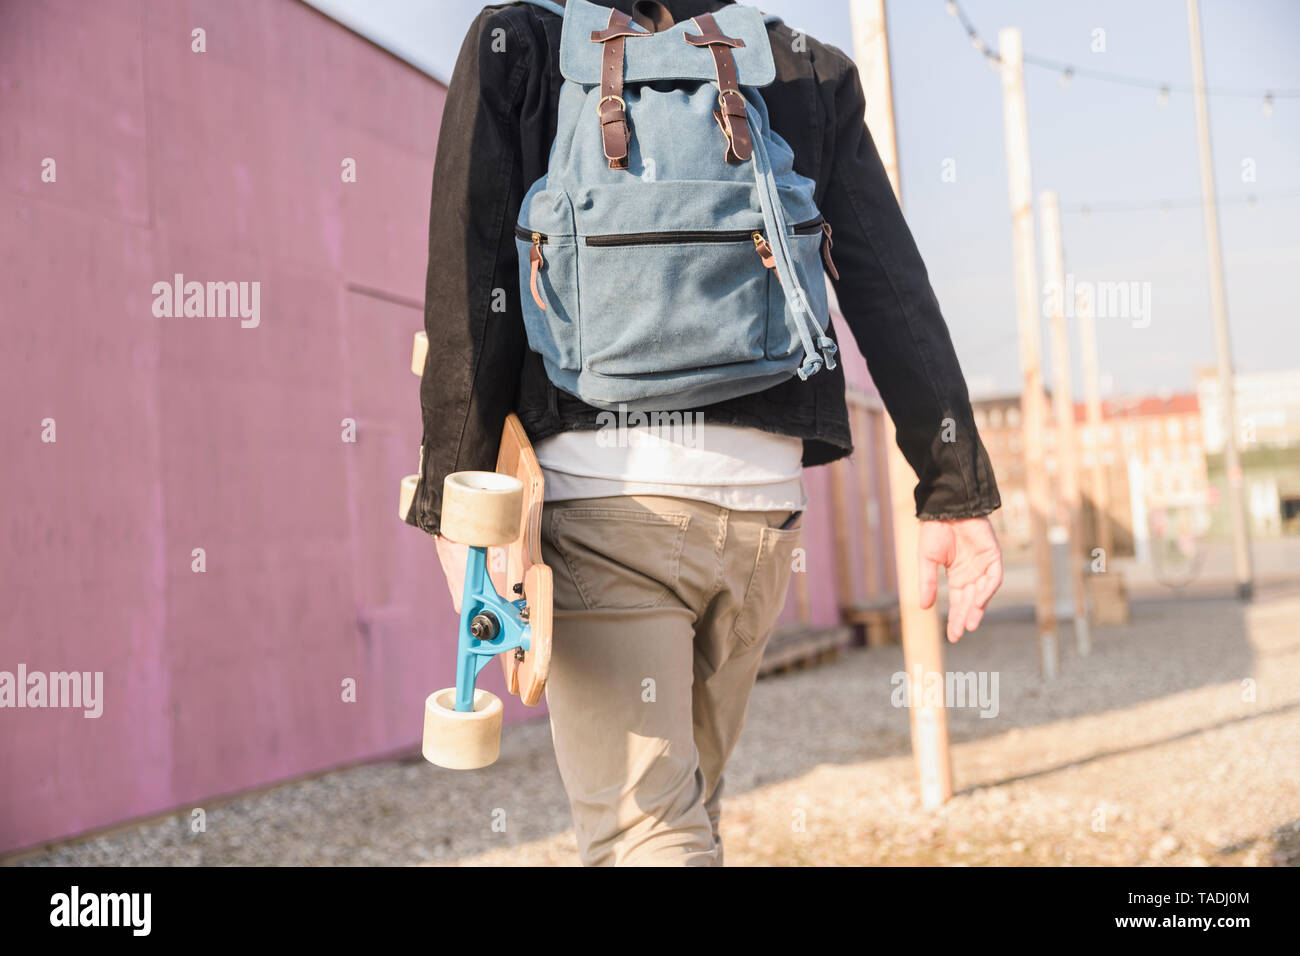 Rear view of young man with skatebaord and backpack on the move in the city - Stock Image